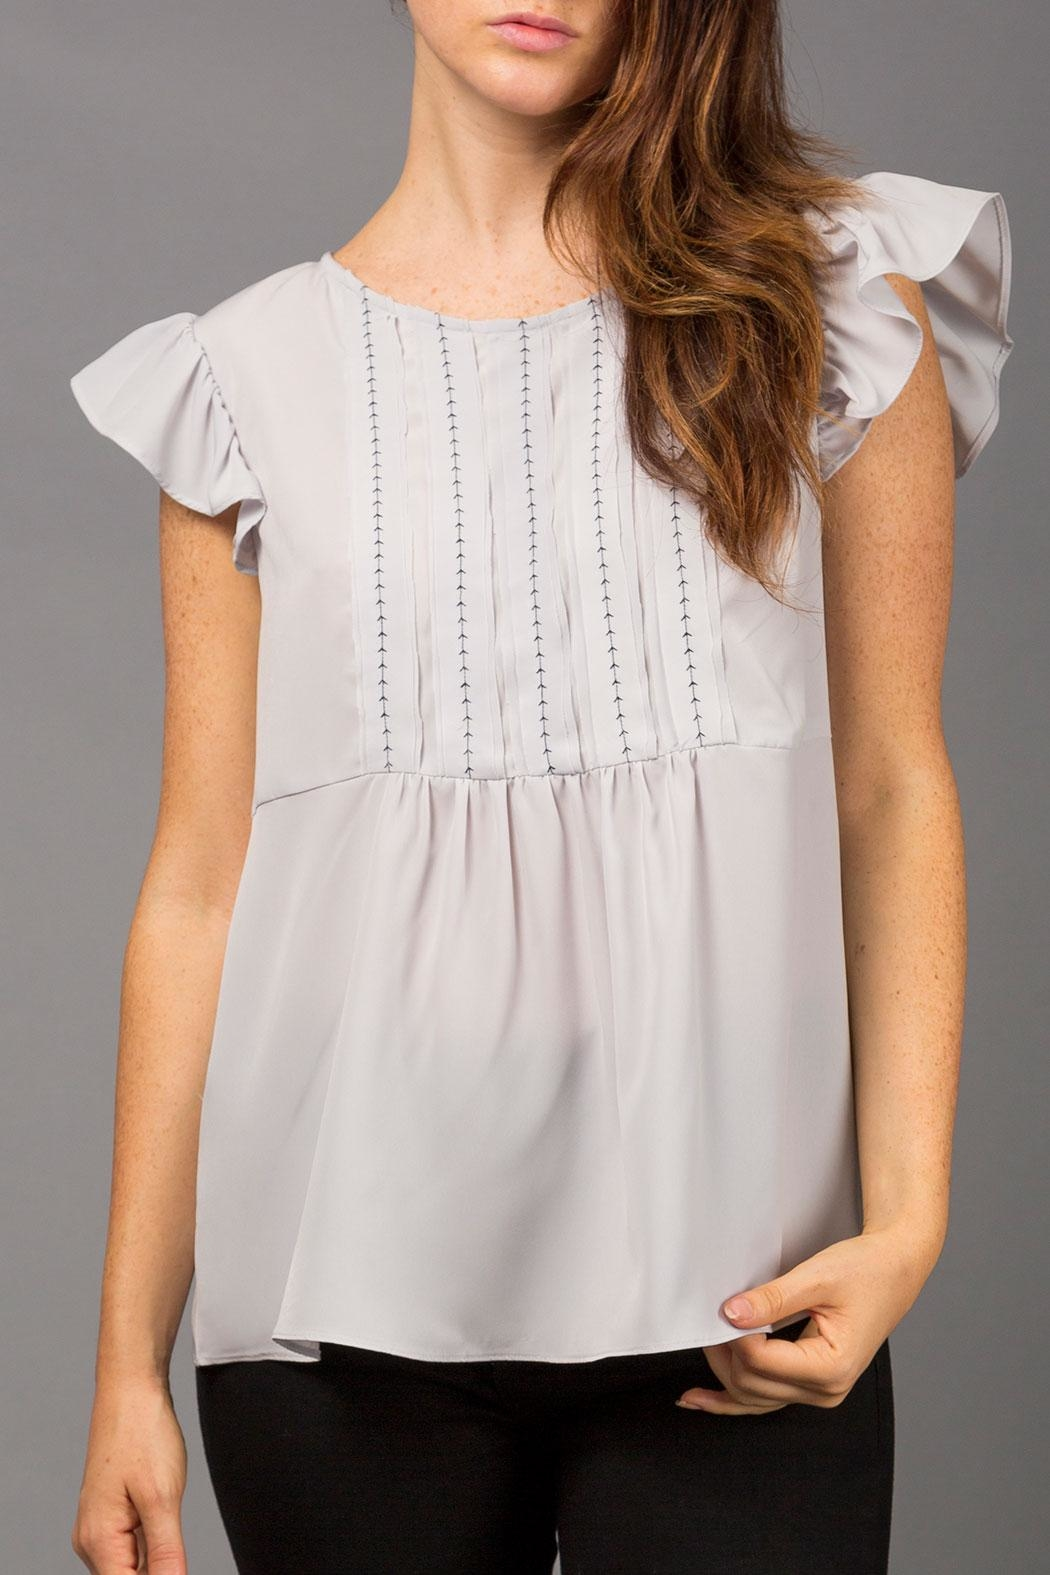 WREN & WILLA Frill-Sleeve Peasant Top - Main Image